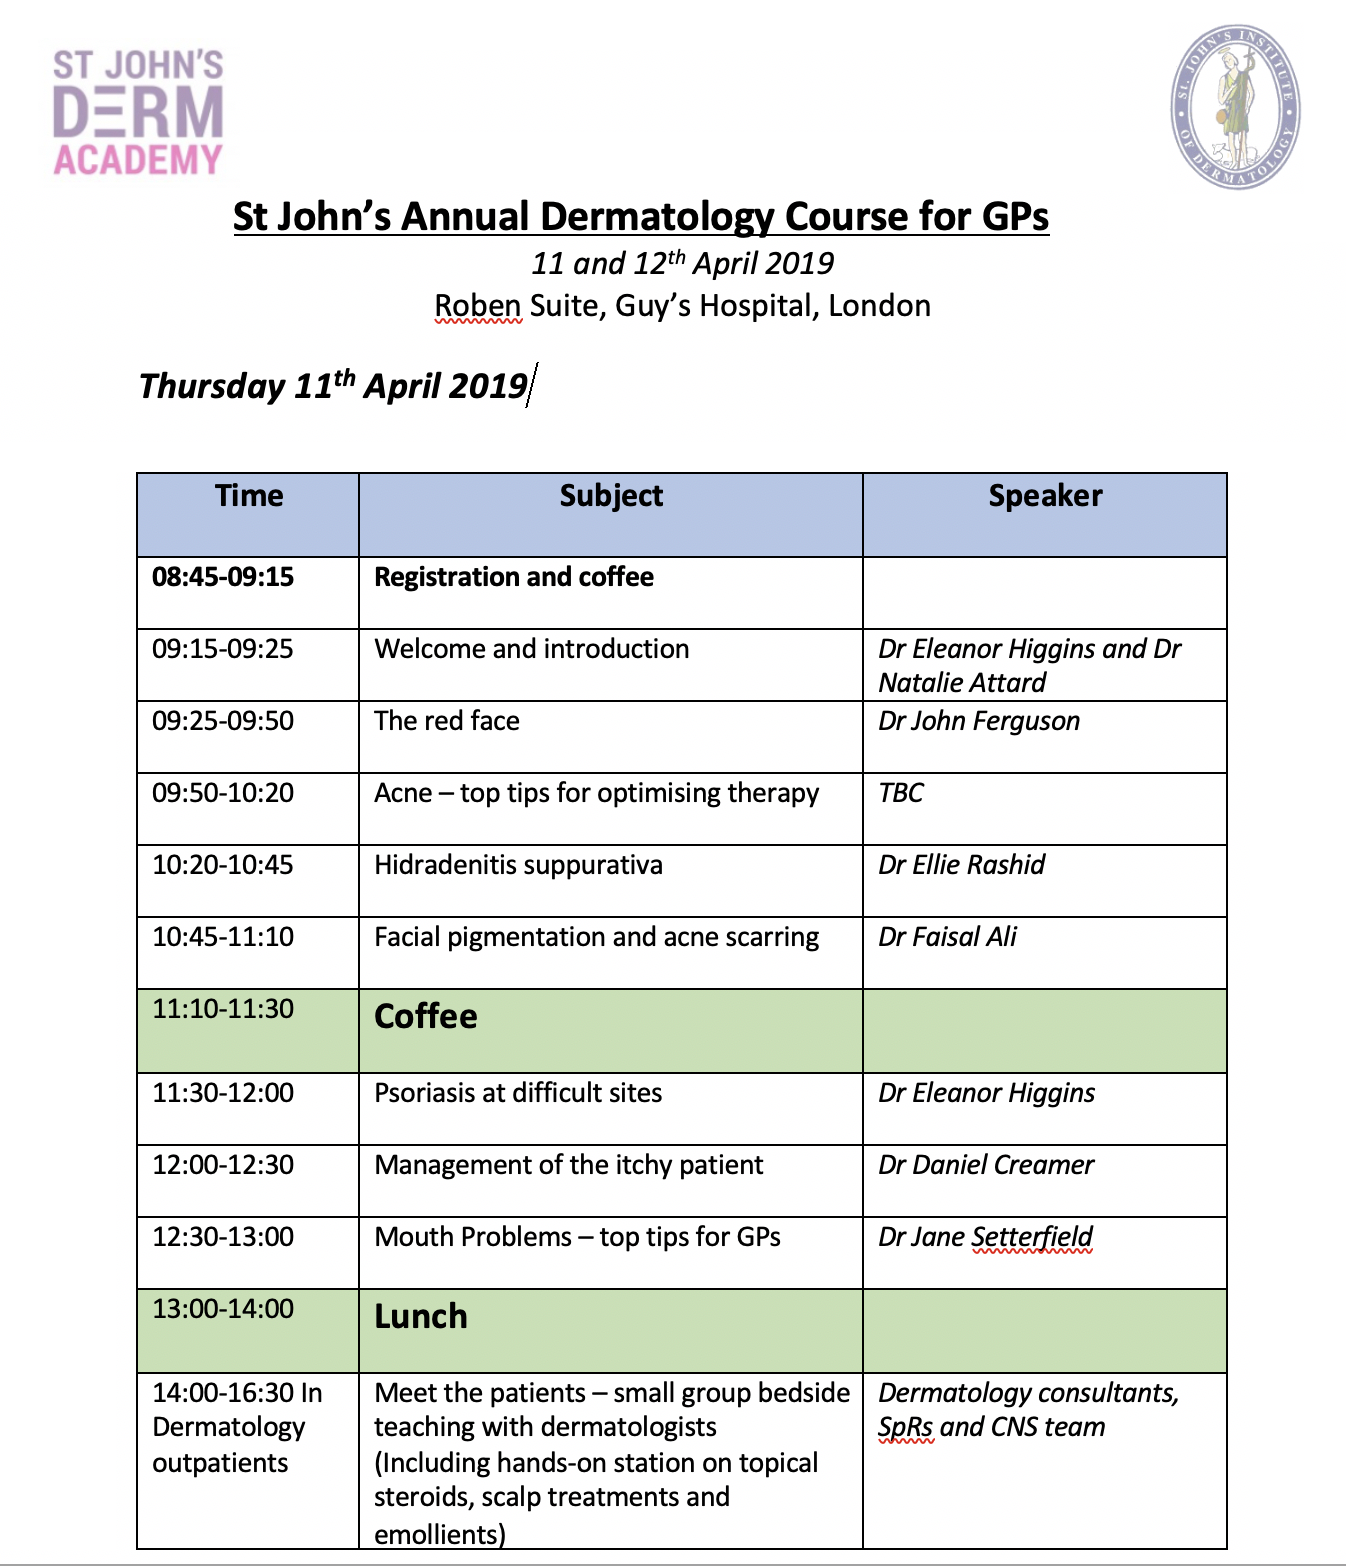 DermAcademy GP Course Day 1 Programme